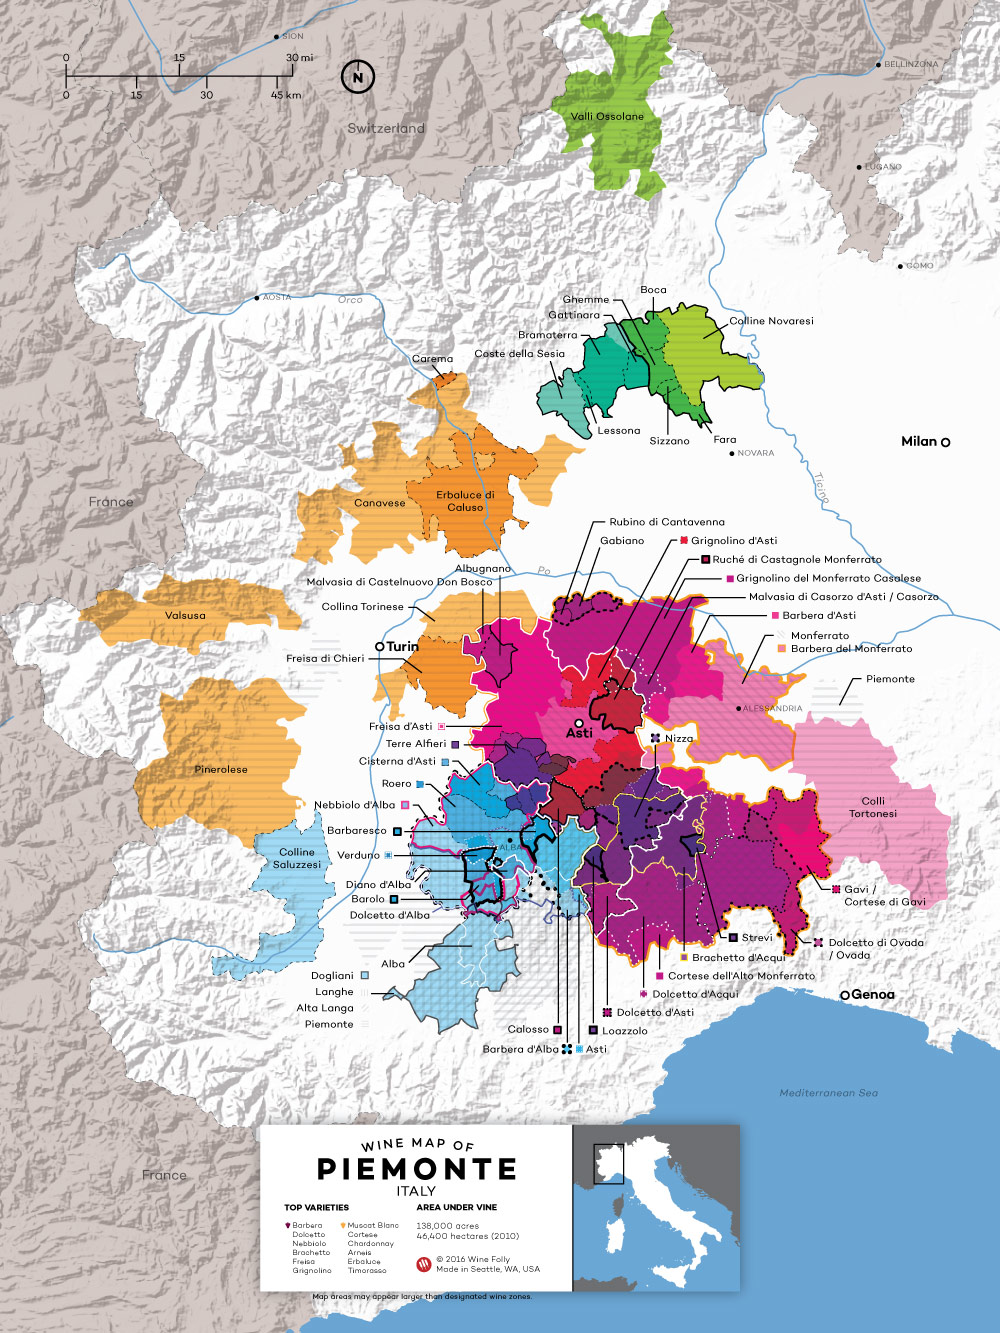 Piedmont-Italy-Wine-Map-2016-Wine-Folly-1